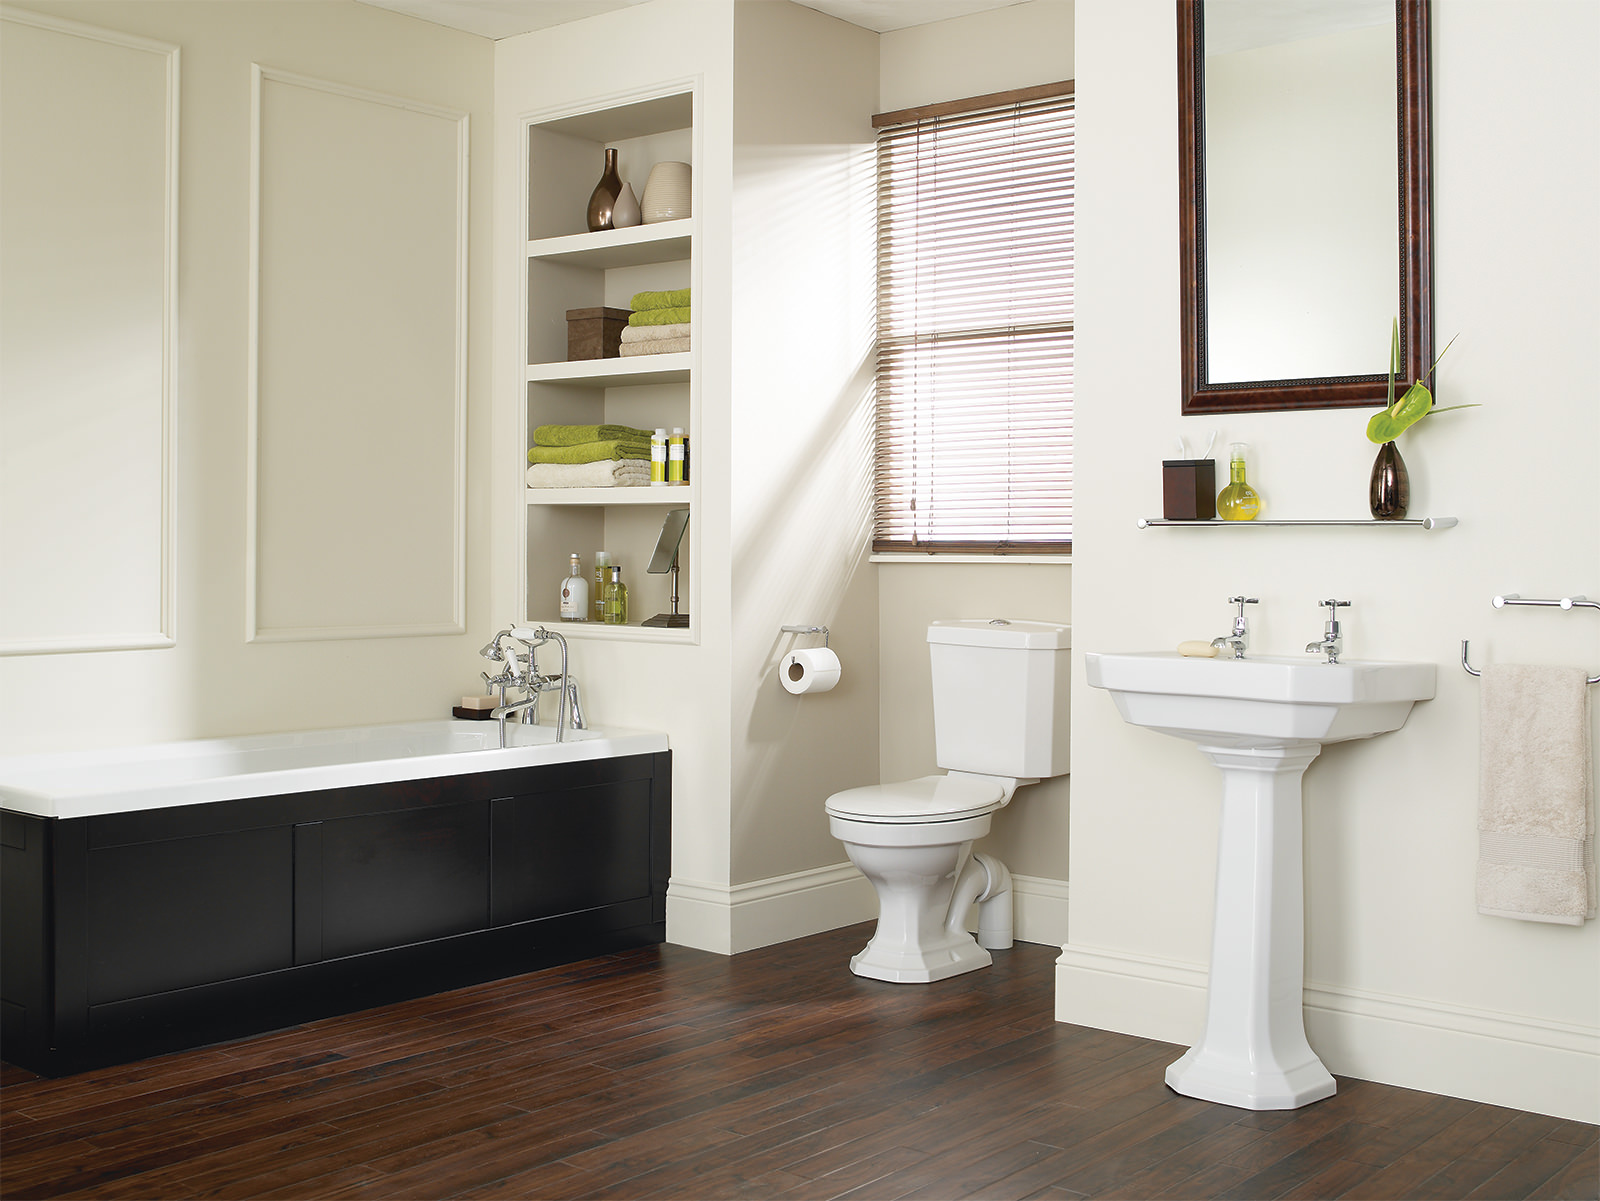 Heritage granley deco traditional bathroom suite for Bathroom suites